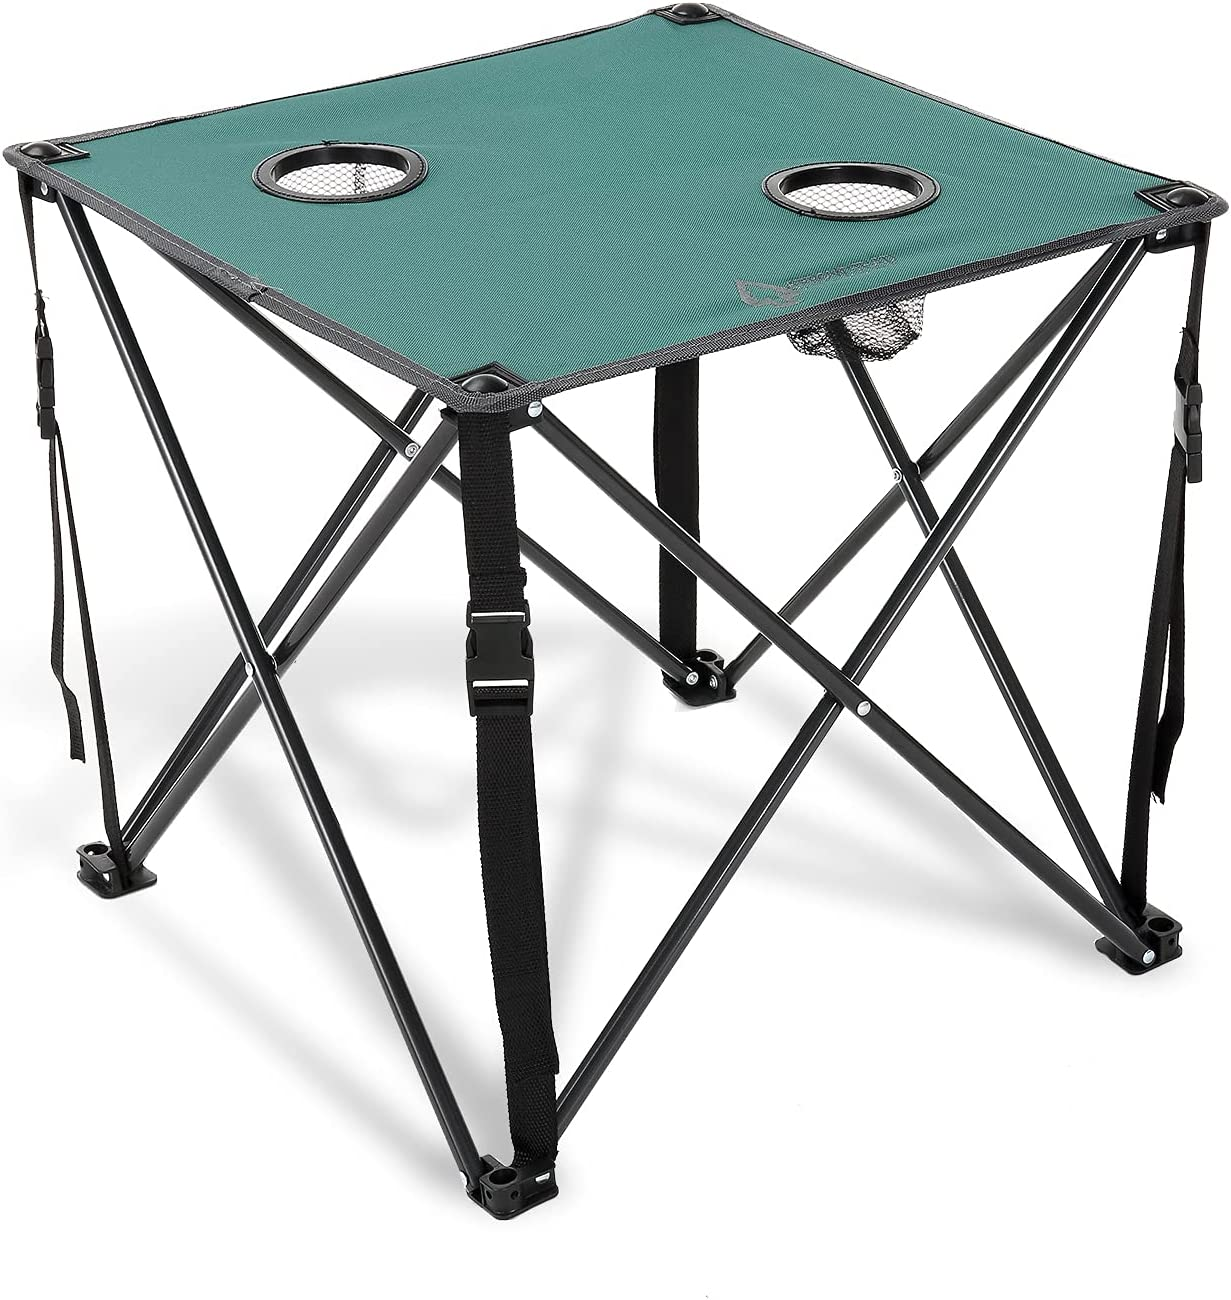 ARROWHEAD OUTDOOR Limited Special Price Heavy-Duty Direct sale of manufacturer Portable Camping Folding C 2 Table